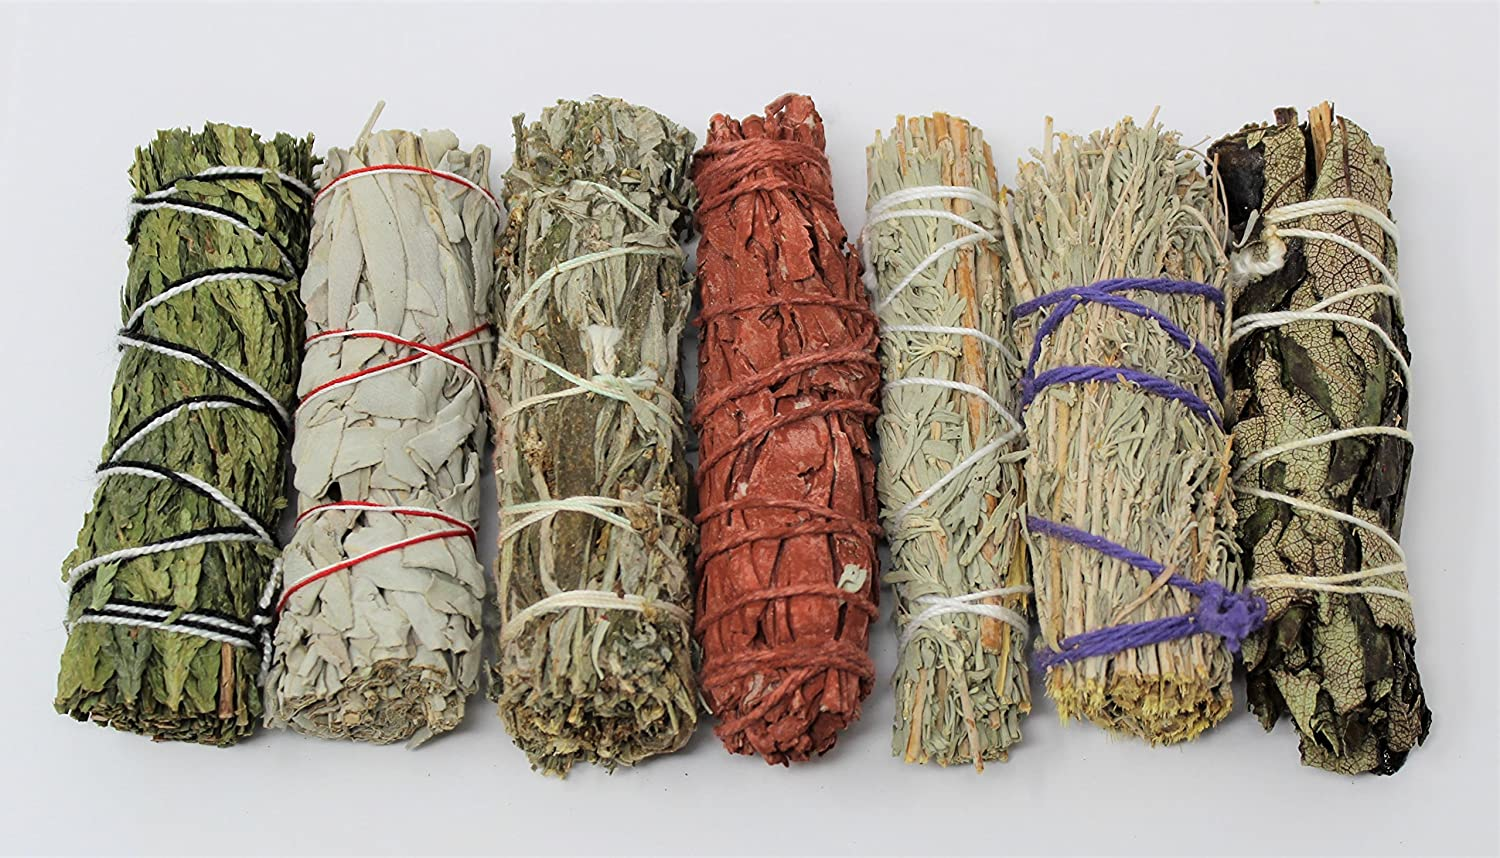 Rainbowrecords239 Set of 7 Sage Smudge Stick SAMPLER: White Black Blue Cedar Dragons Blood Desert Yerba Santa